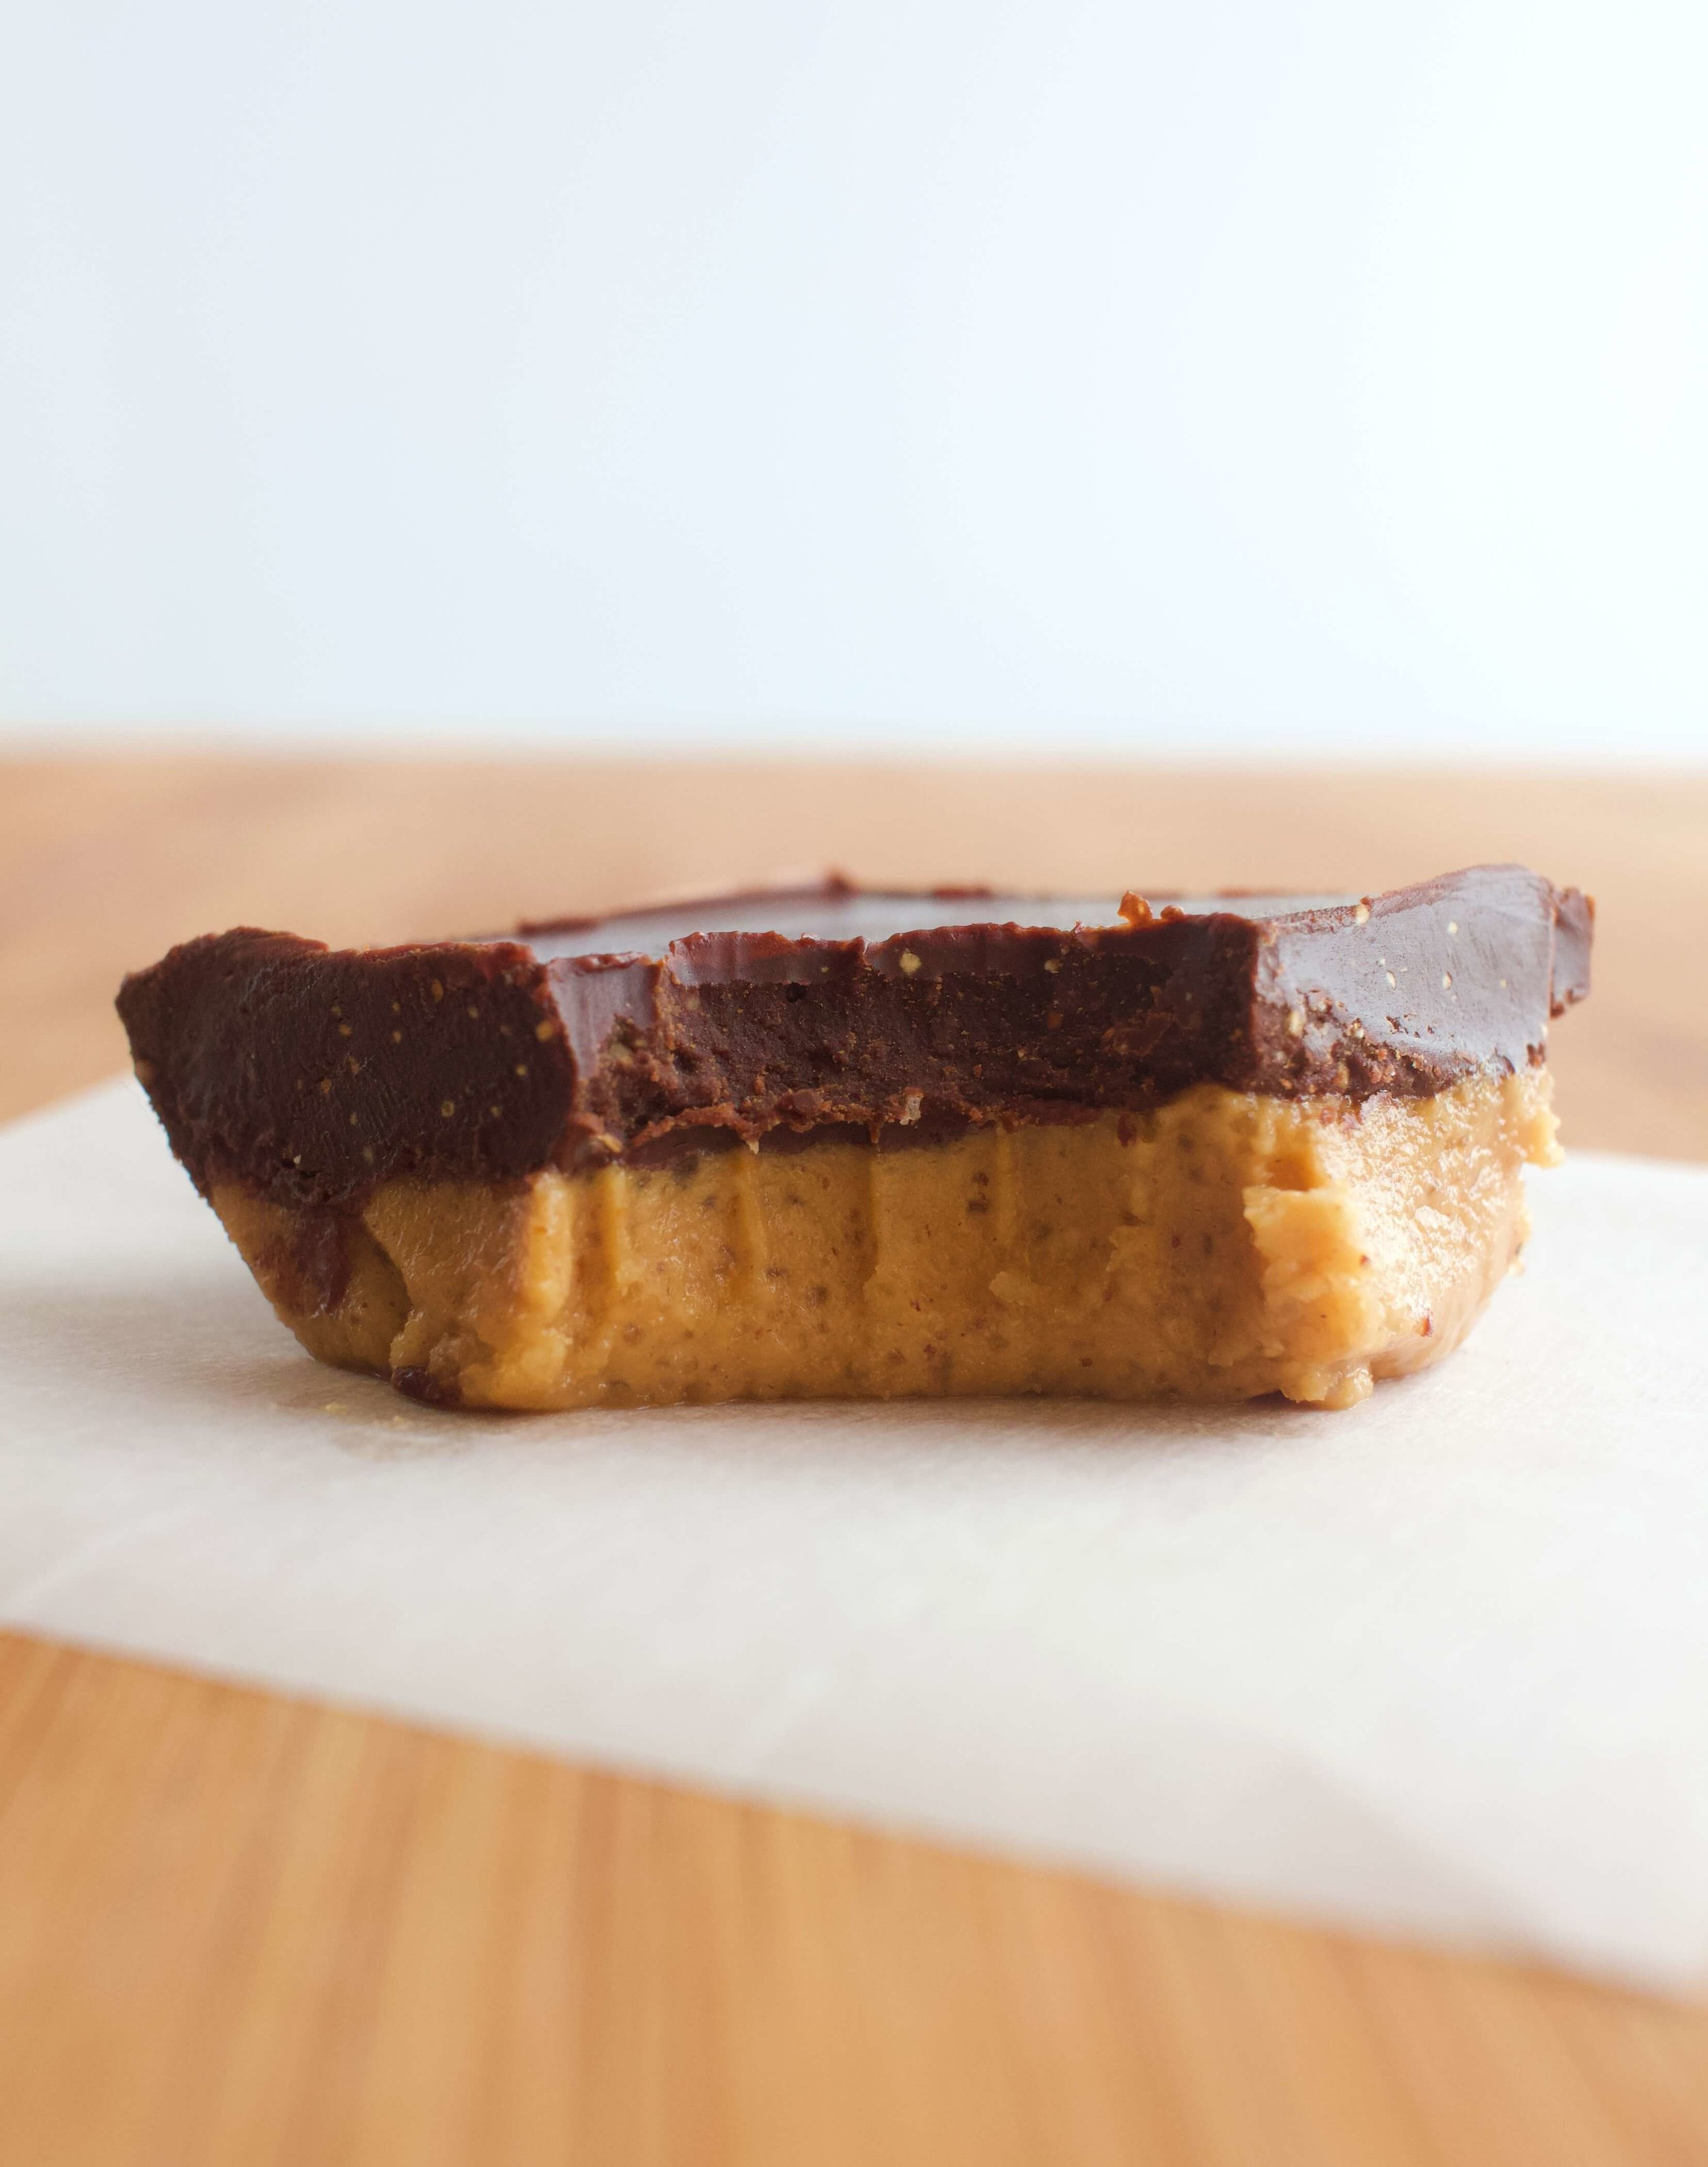 These simple no-bake chocolate peanut butter bars are fat bombs in disguise. They deliver rich and decadent flavor without waiting on your oven!